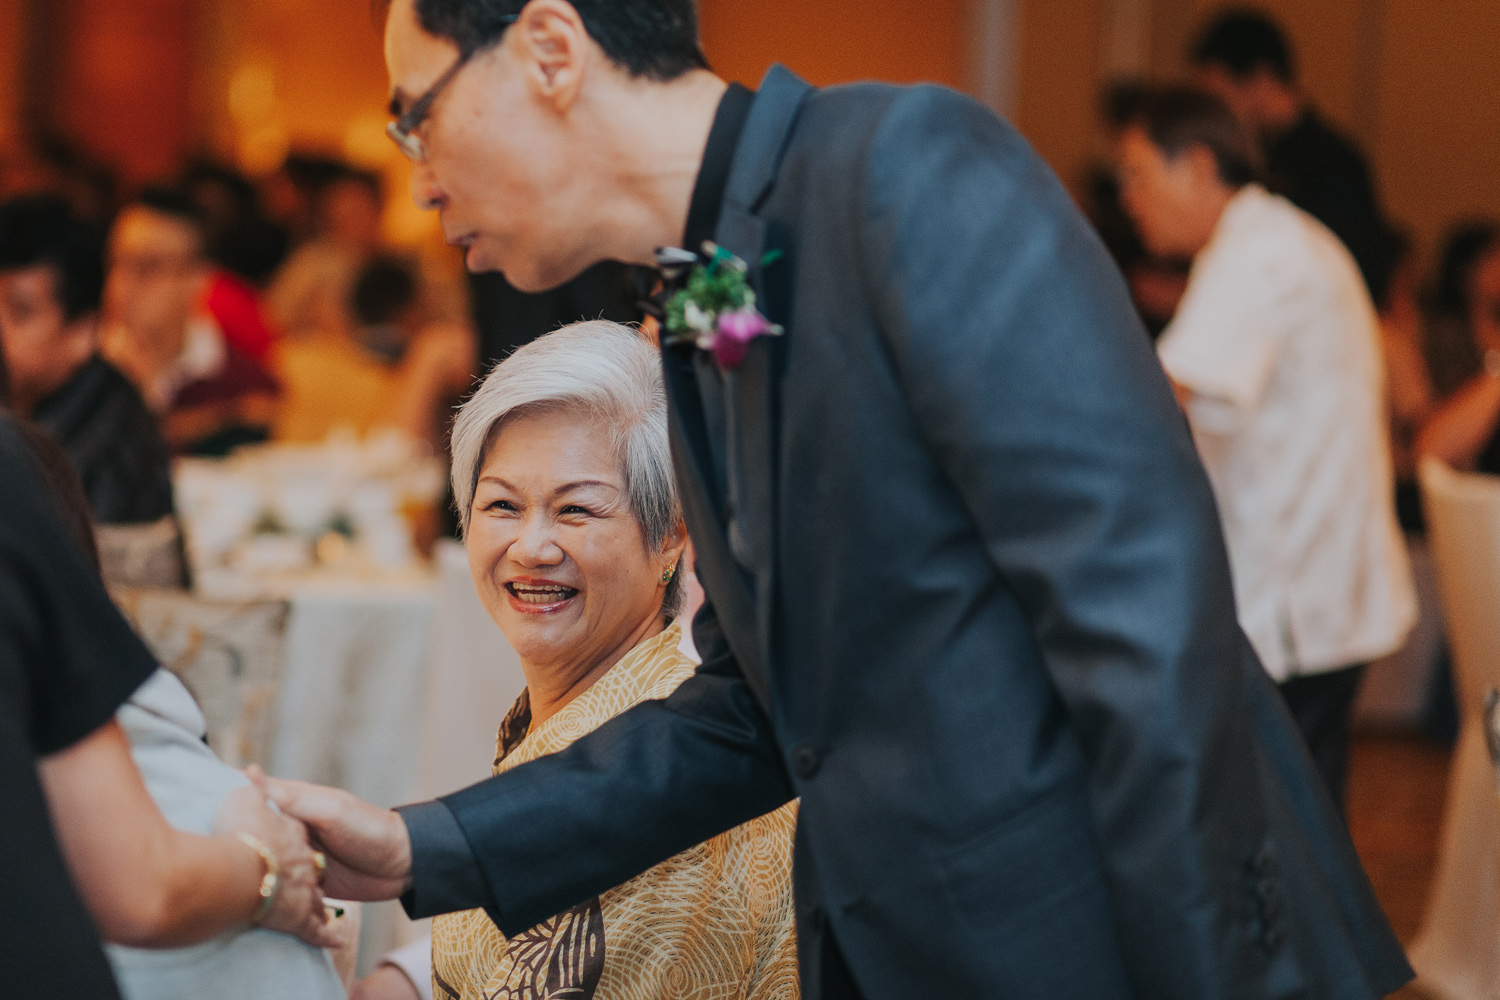 bittersweet photography Singapore wedding photographer jonathan 96